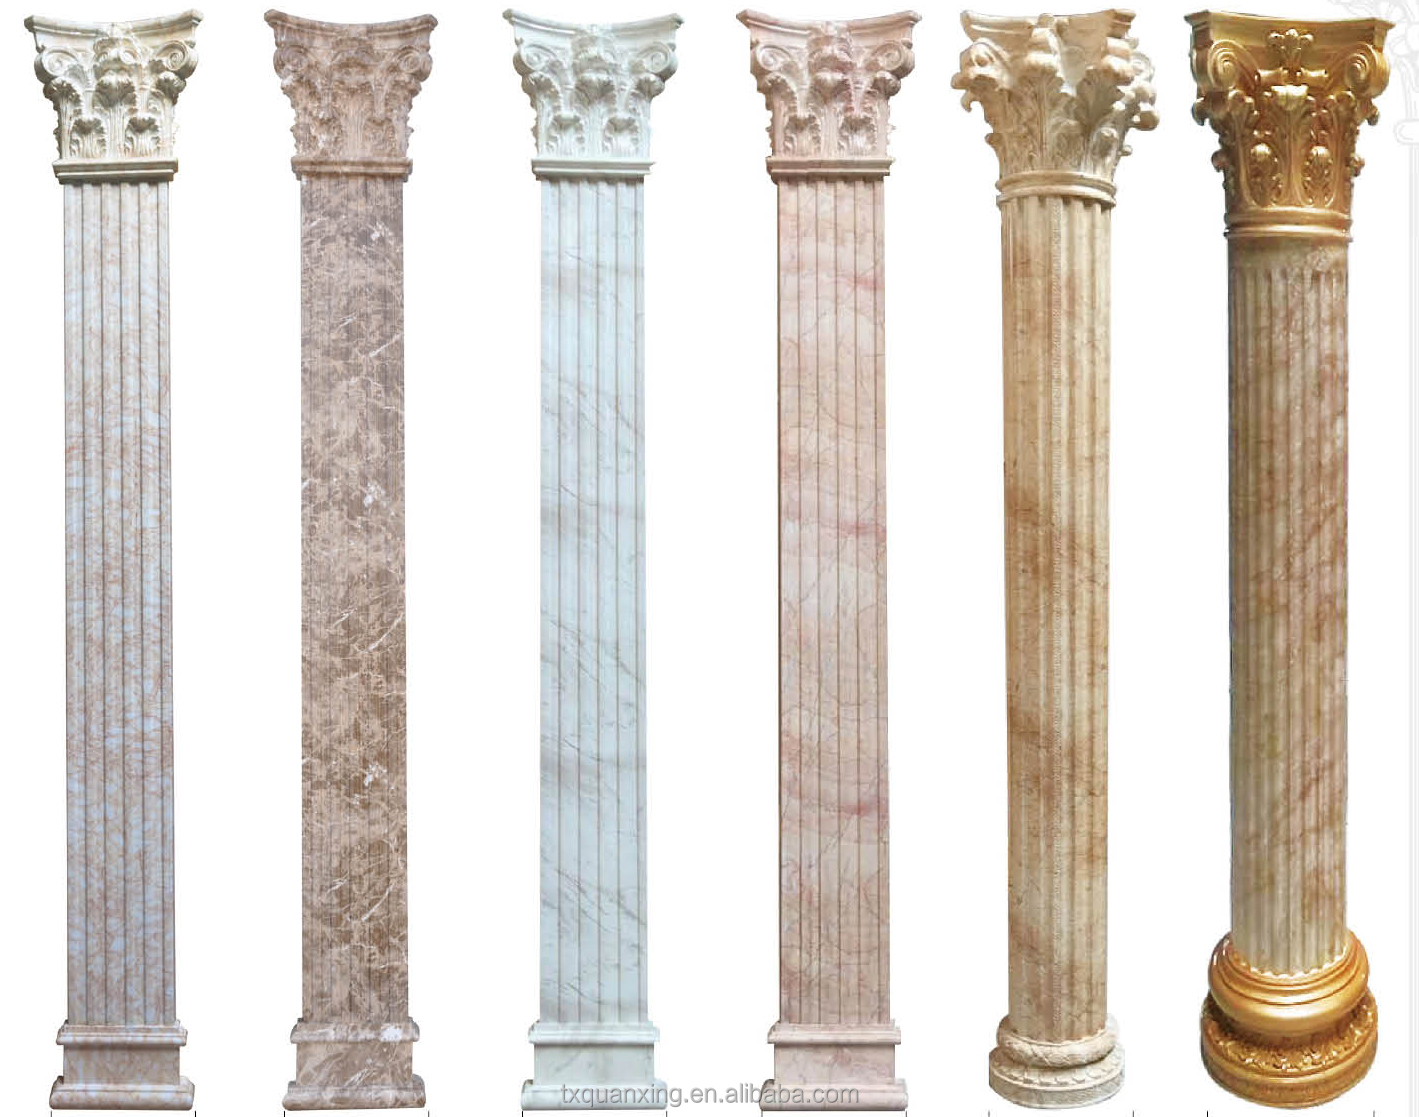 pillar capital design pillar capital design suppliers and